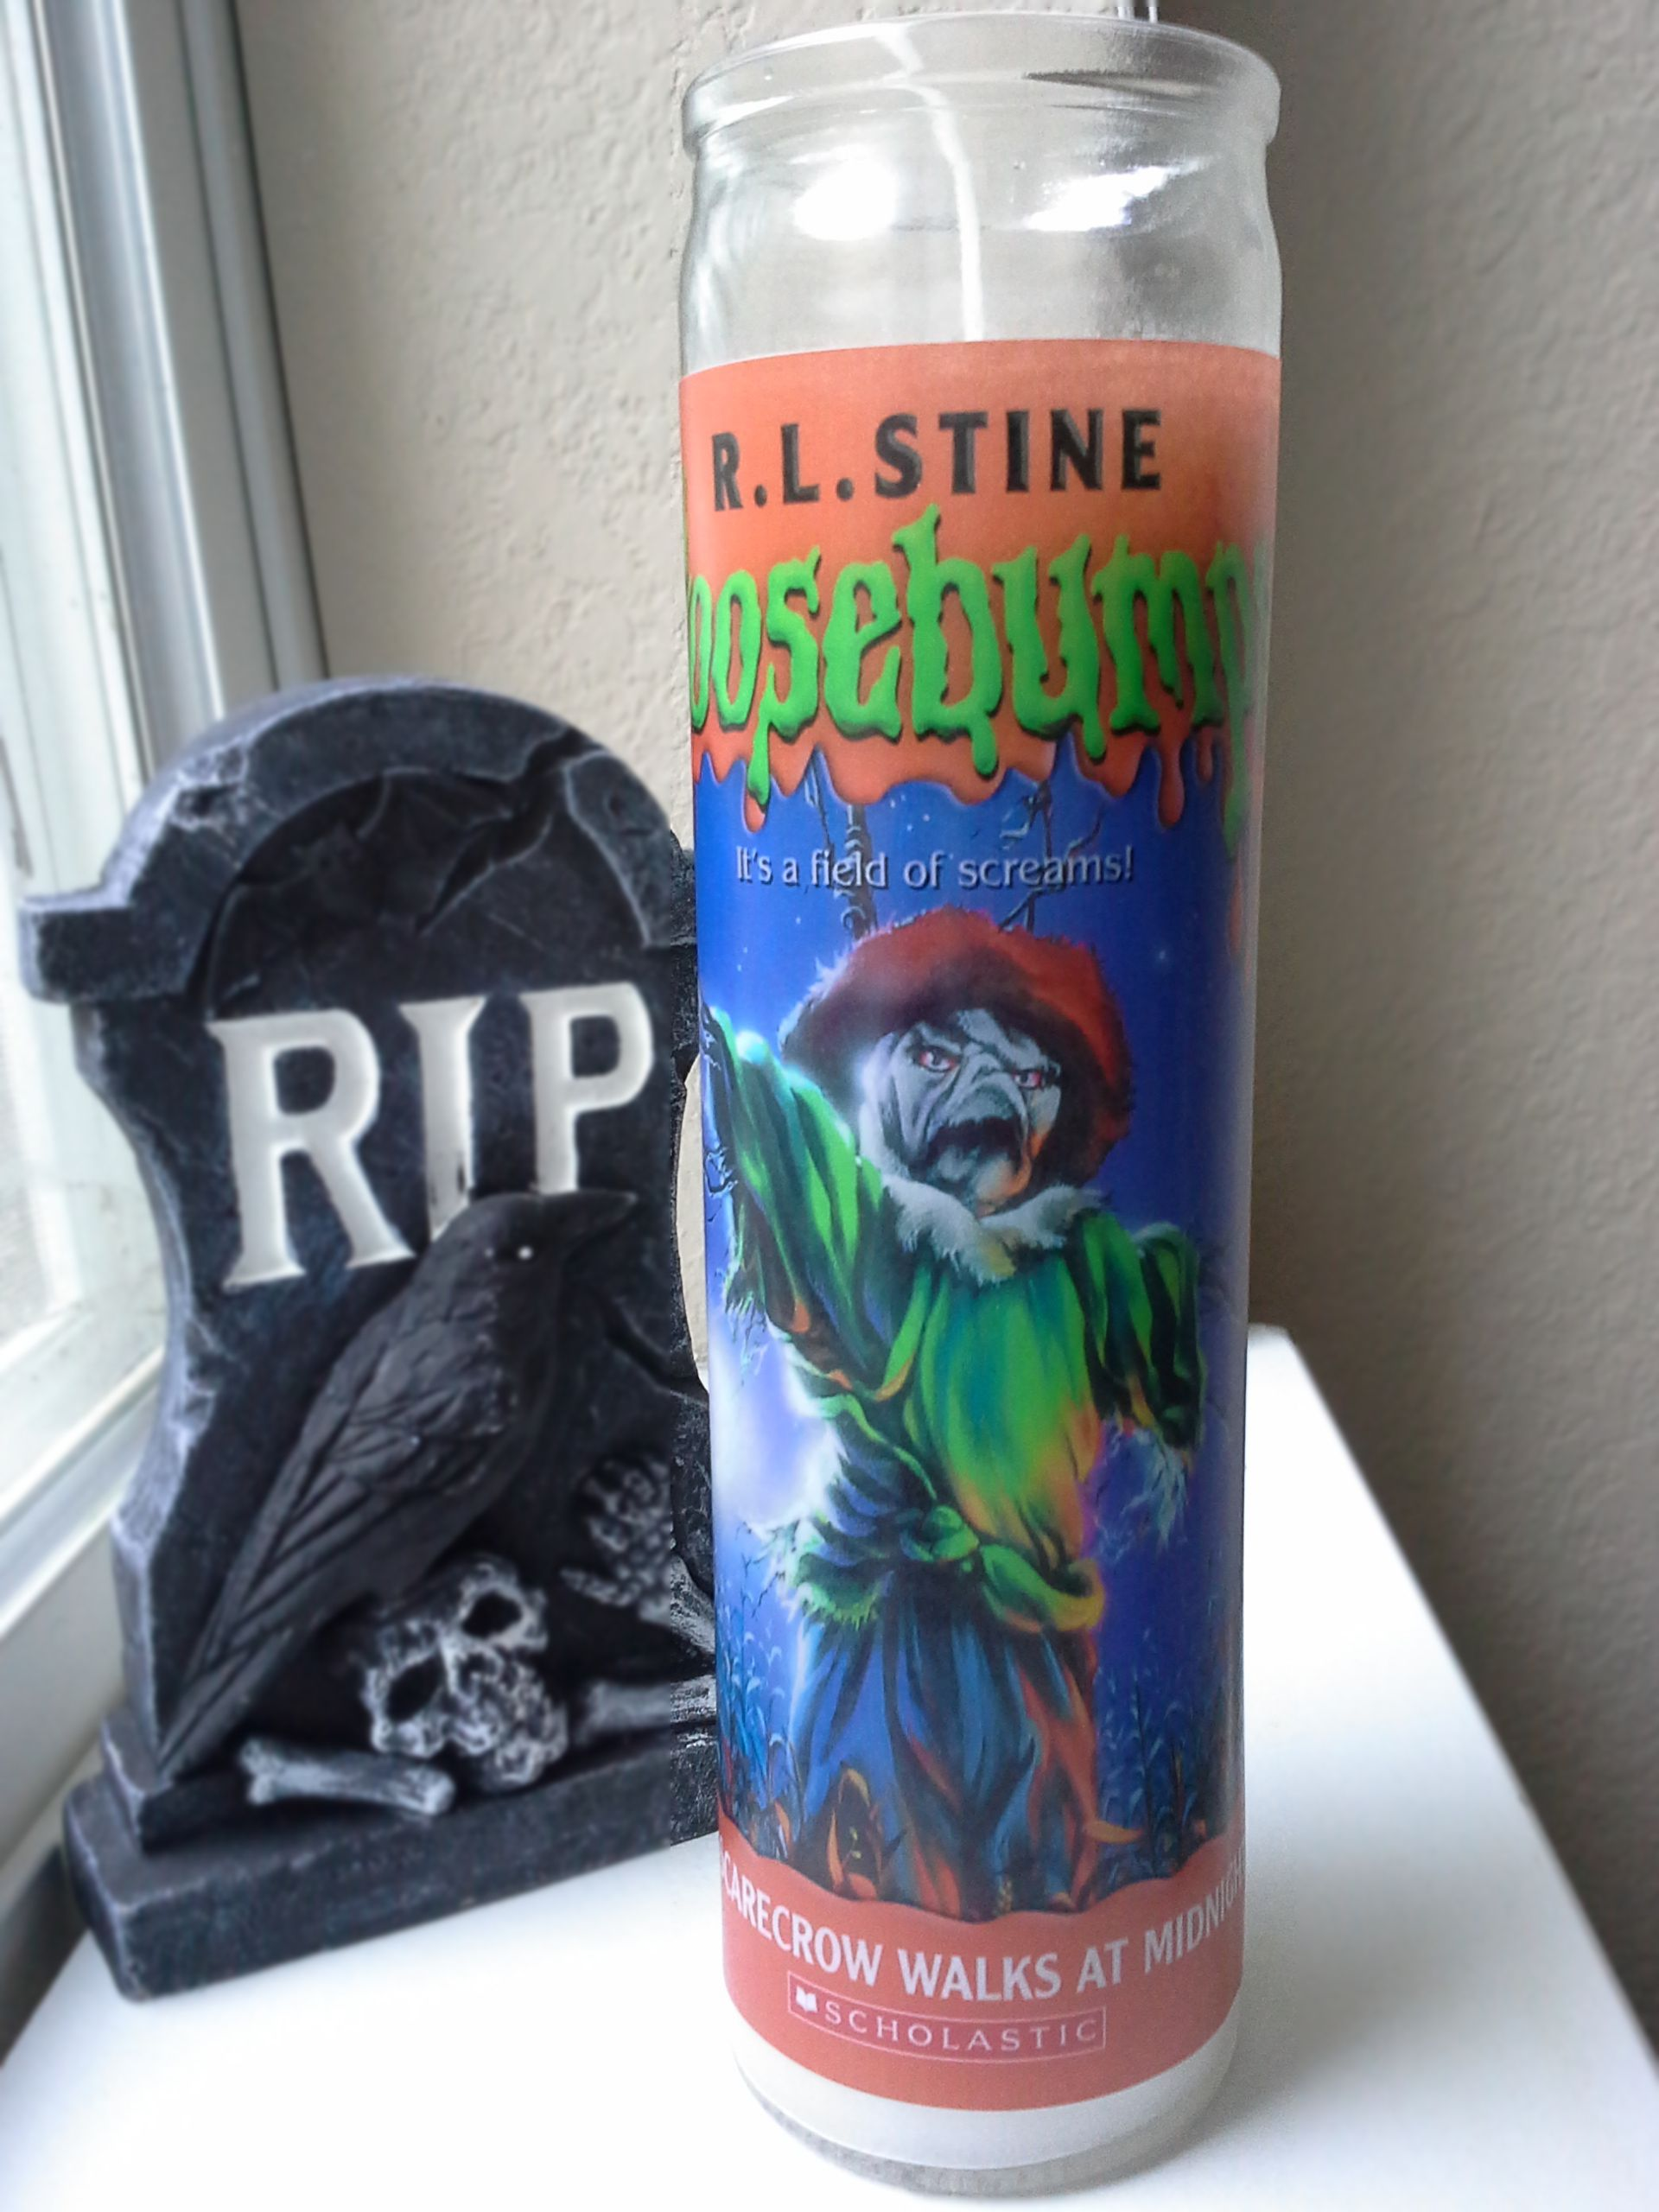 Goosebumps scarecrow prayer candle from bella morta jewelry